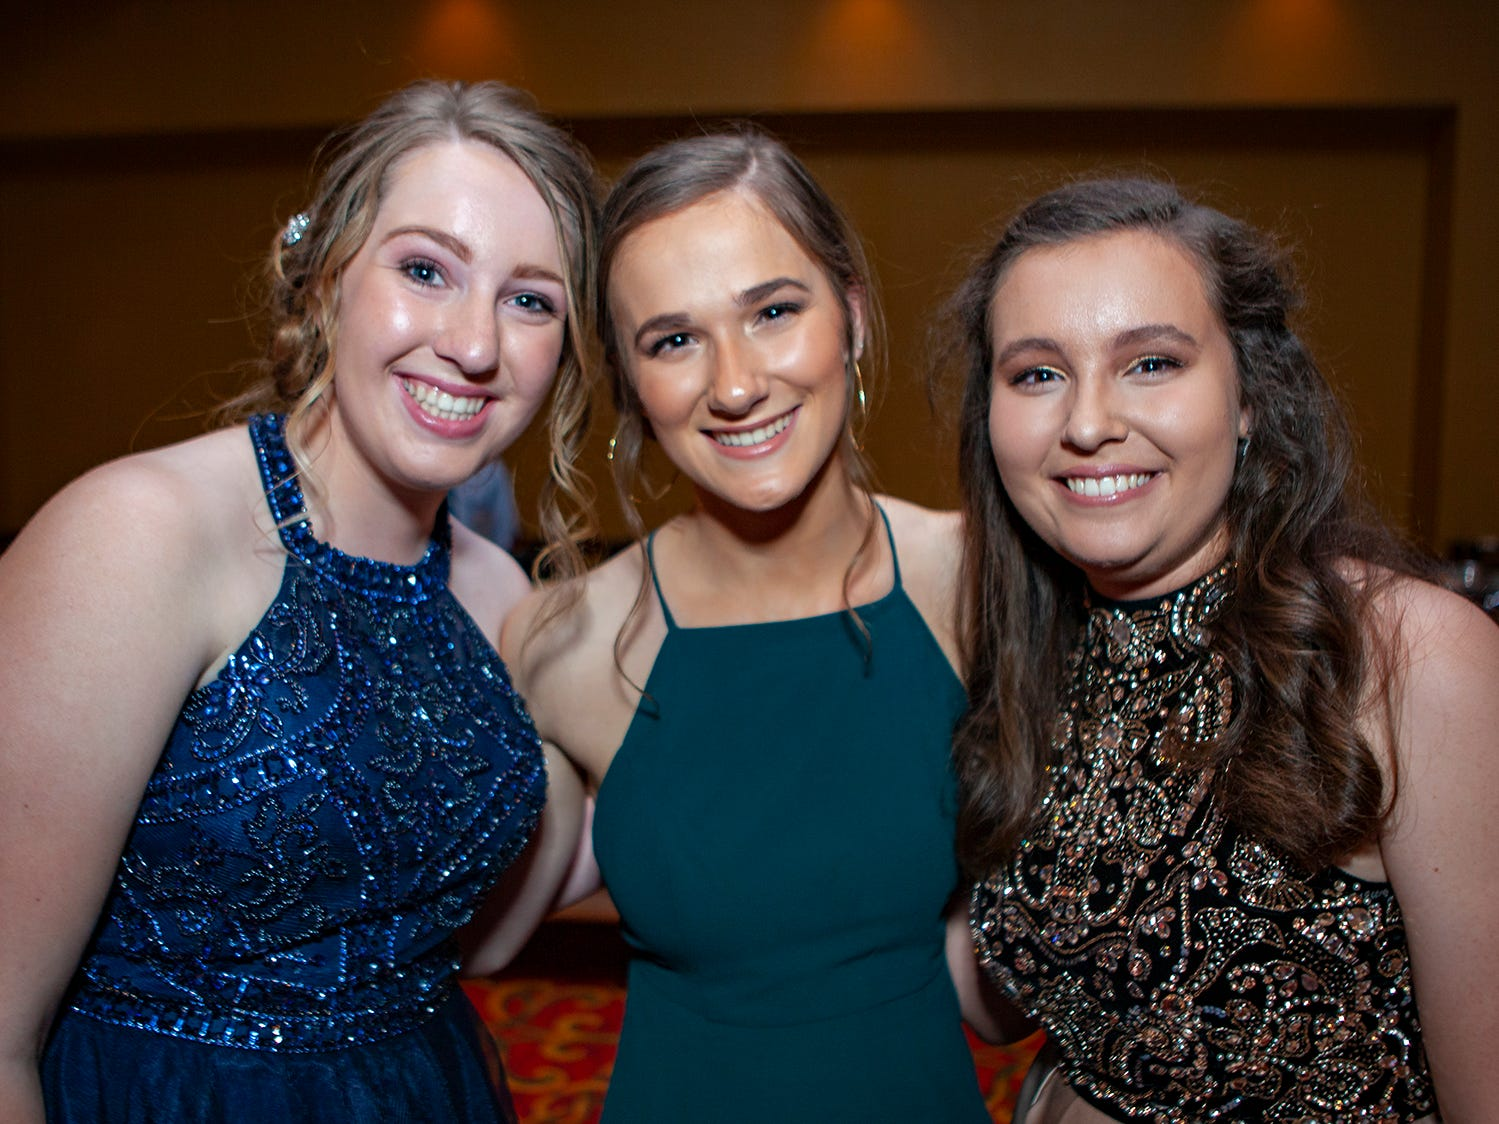 Ellie Stephens, Ella Rosser and Sydney Stains at the Central Magnet School Saturday, April 6, 2019 at Embassy Suites in Murfreesboro.